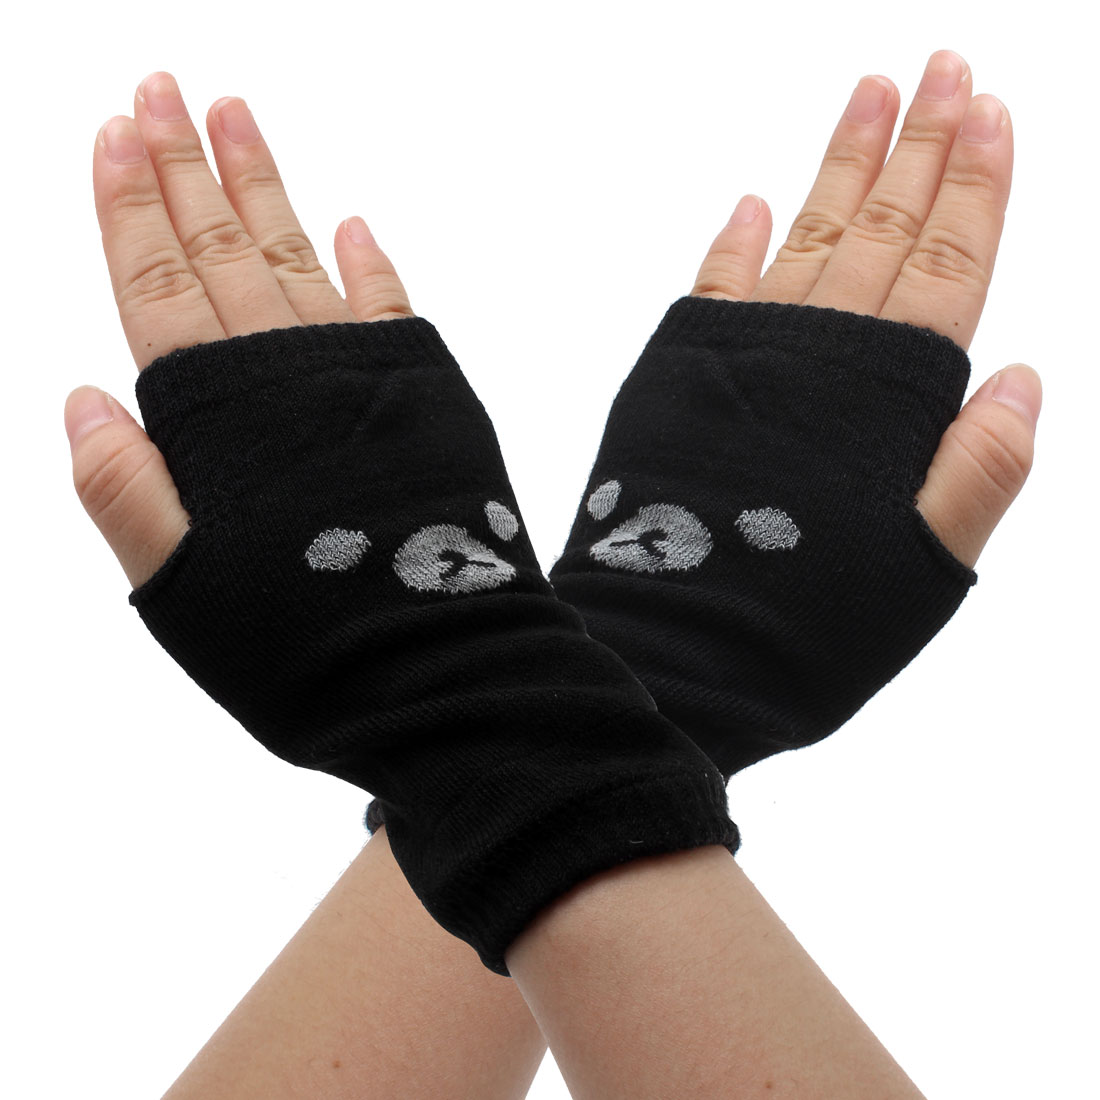 Unisex Cartoon Print Winter Elastic Fingerless Acrylic Gloves Gray Black Pair